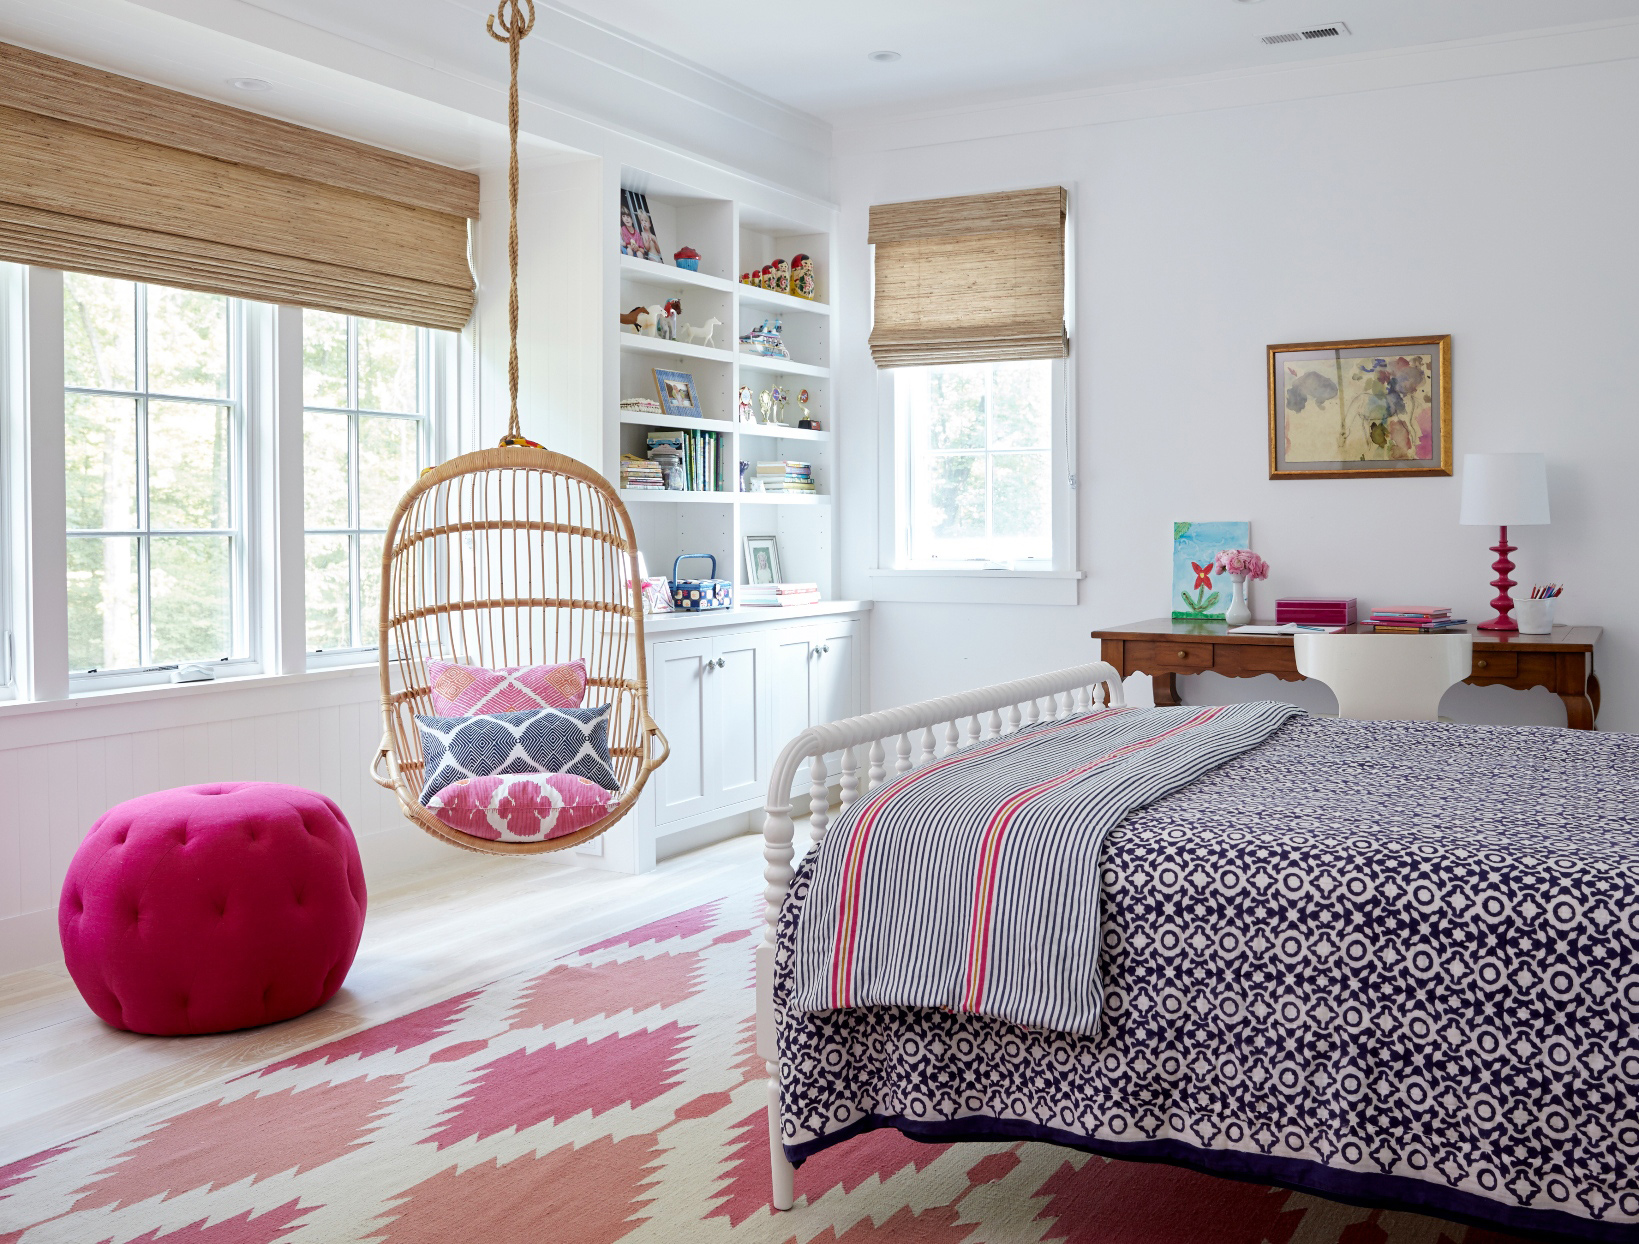 bedroom decorated with hues of pink and purple